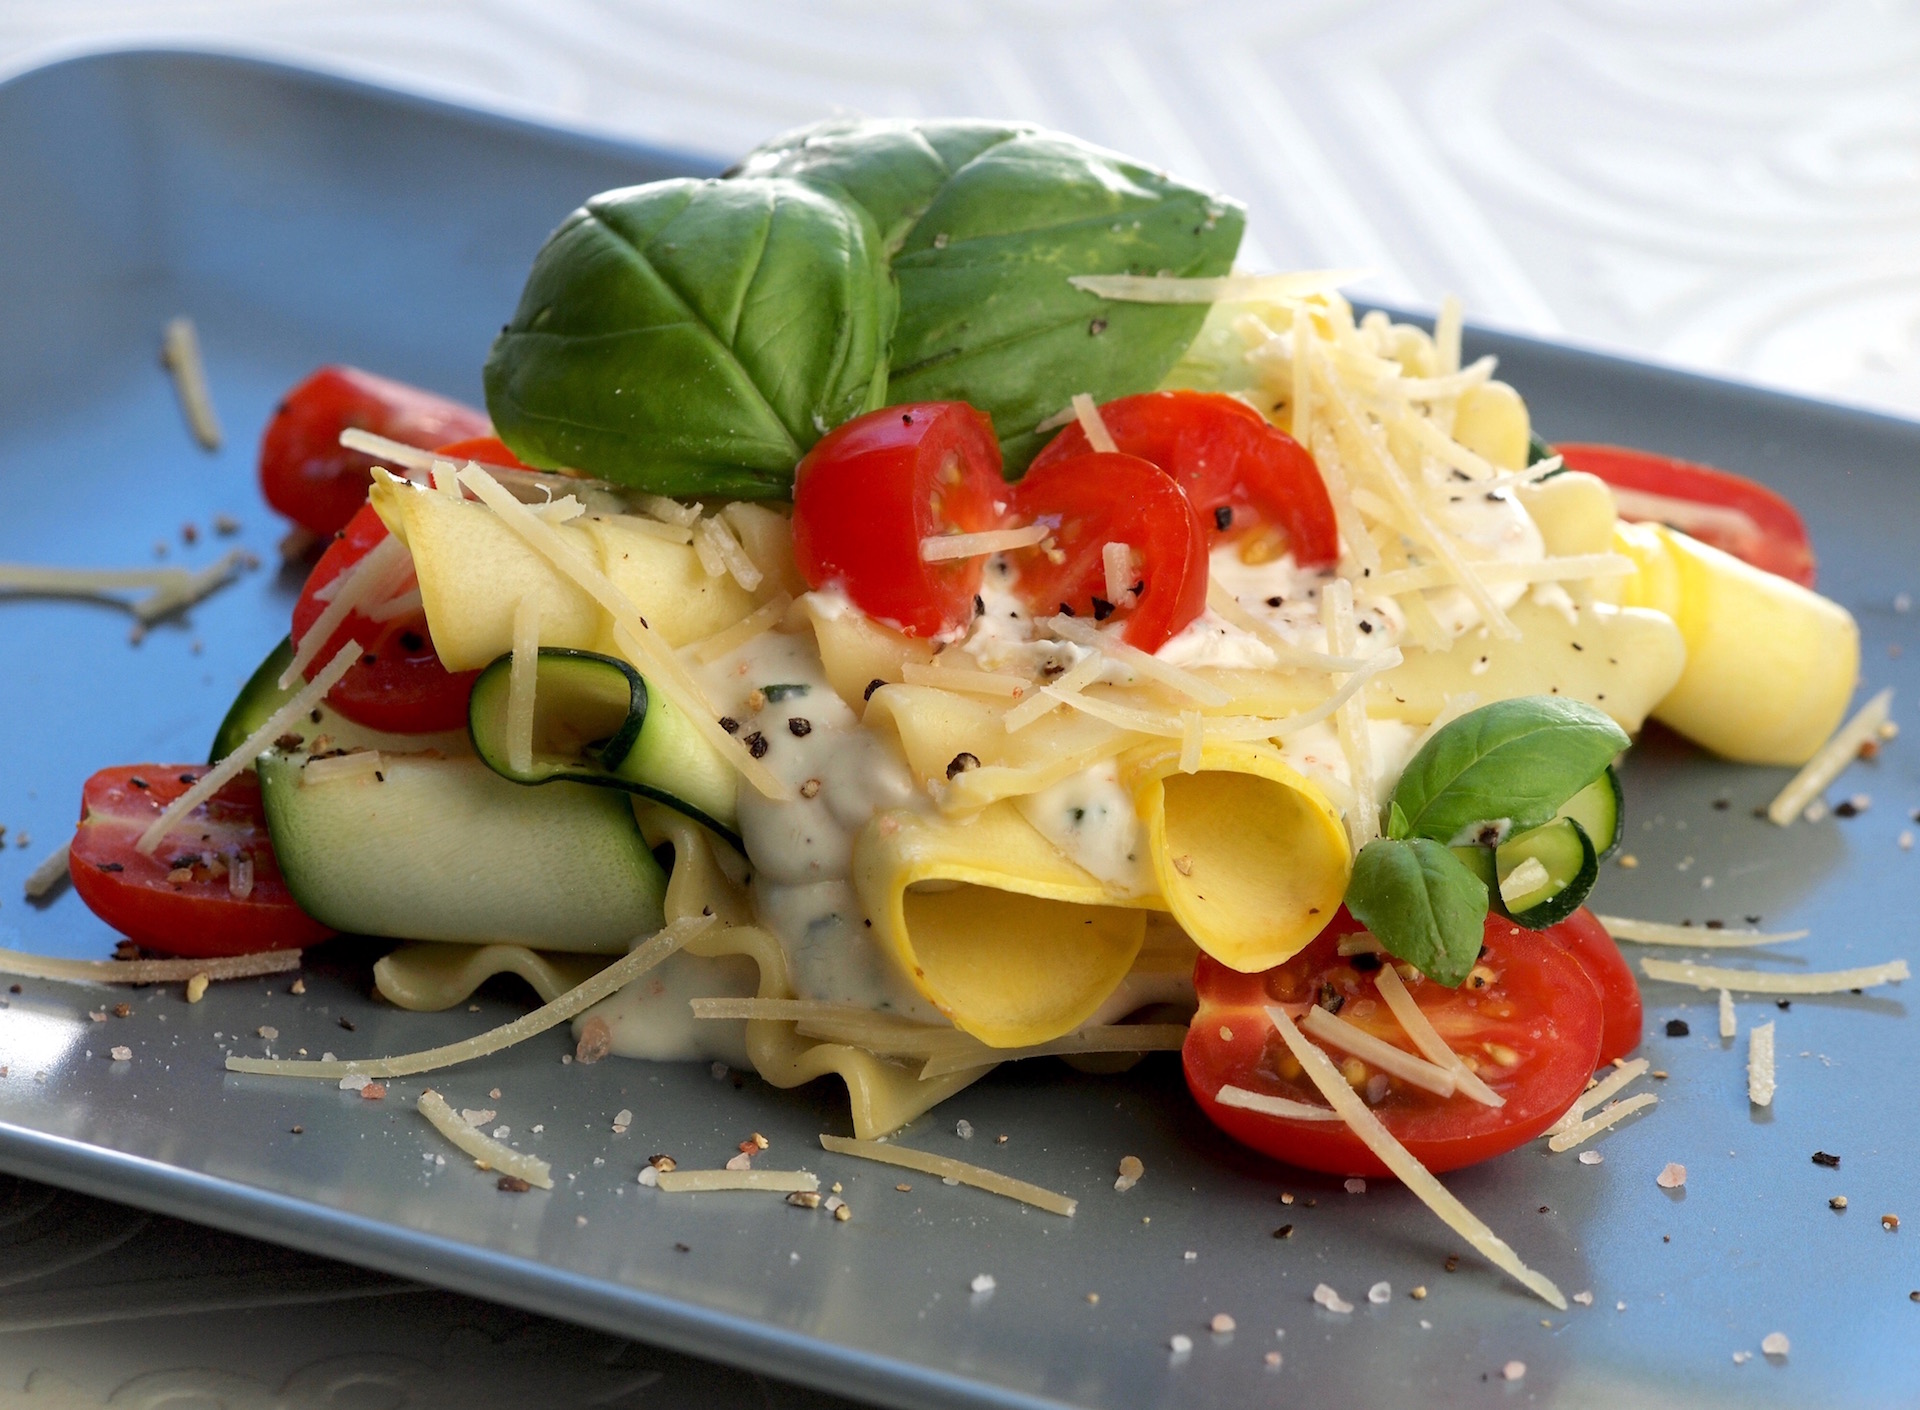 Chilled Squash Lasagna with Herbed Cheese